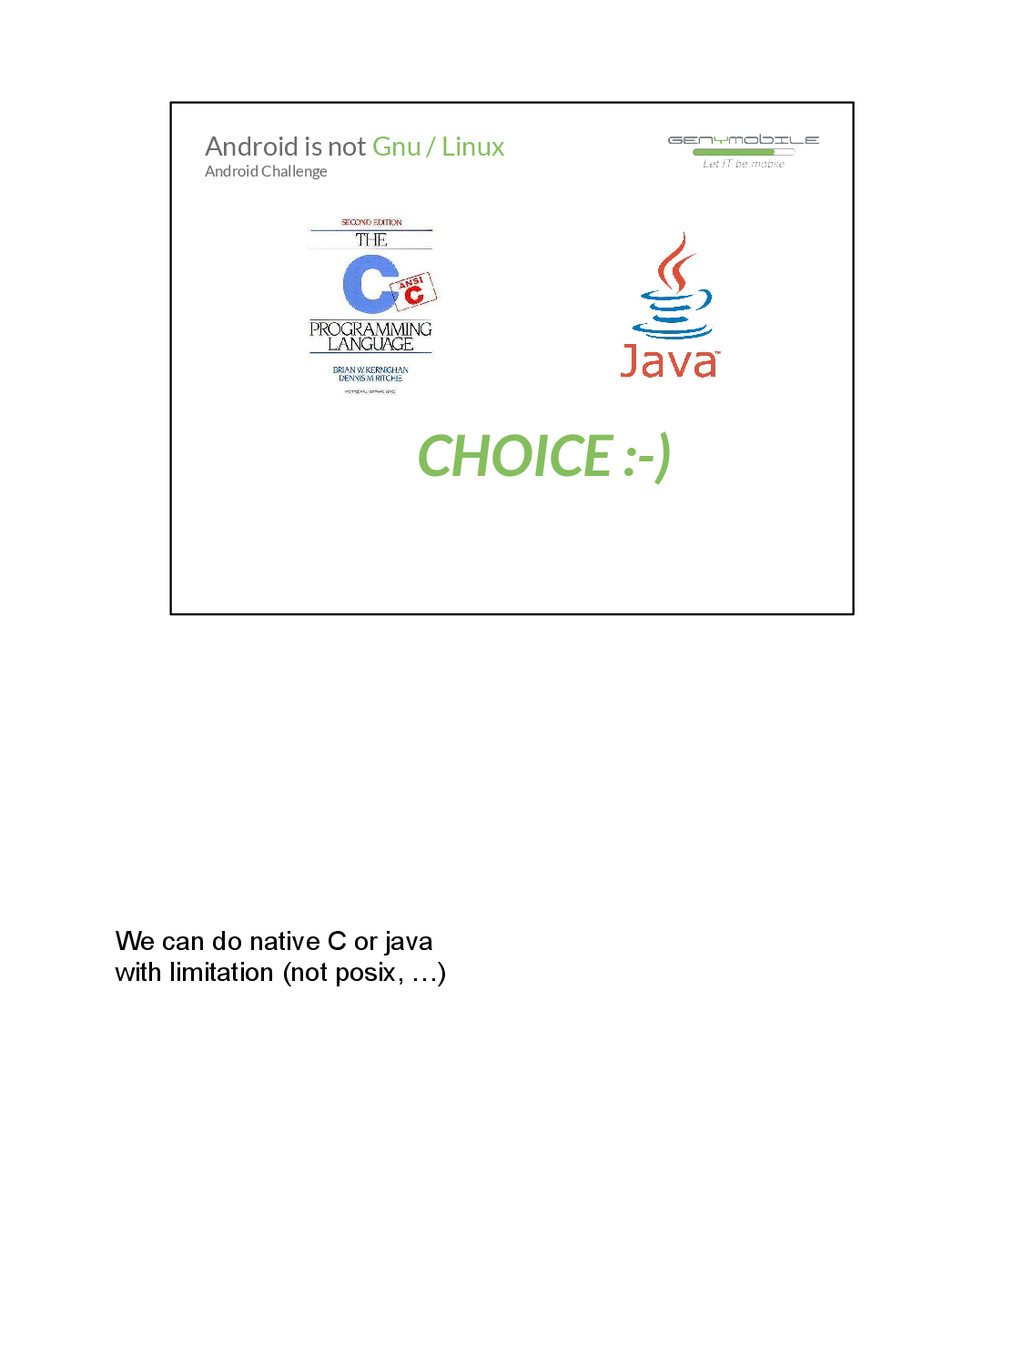 We can do native C or java with limitation (not...